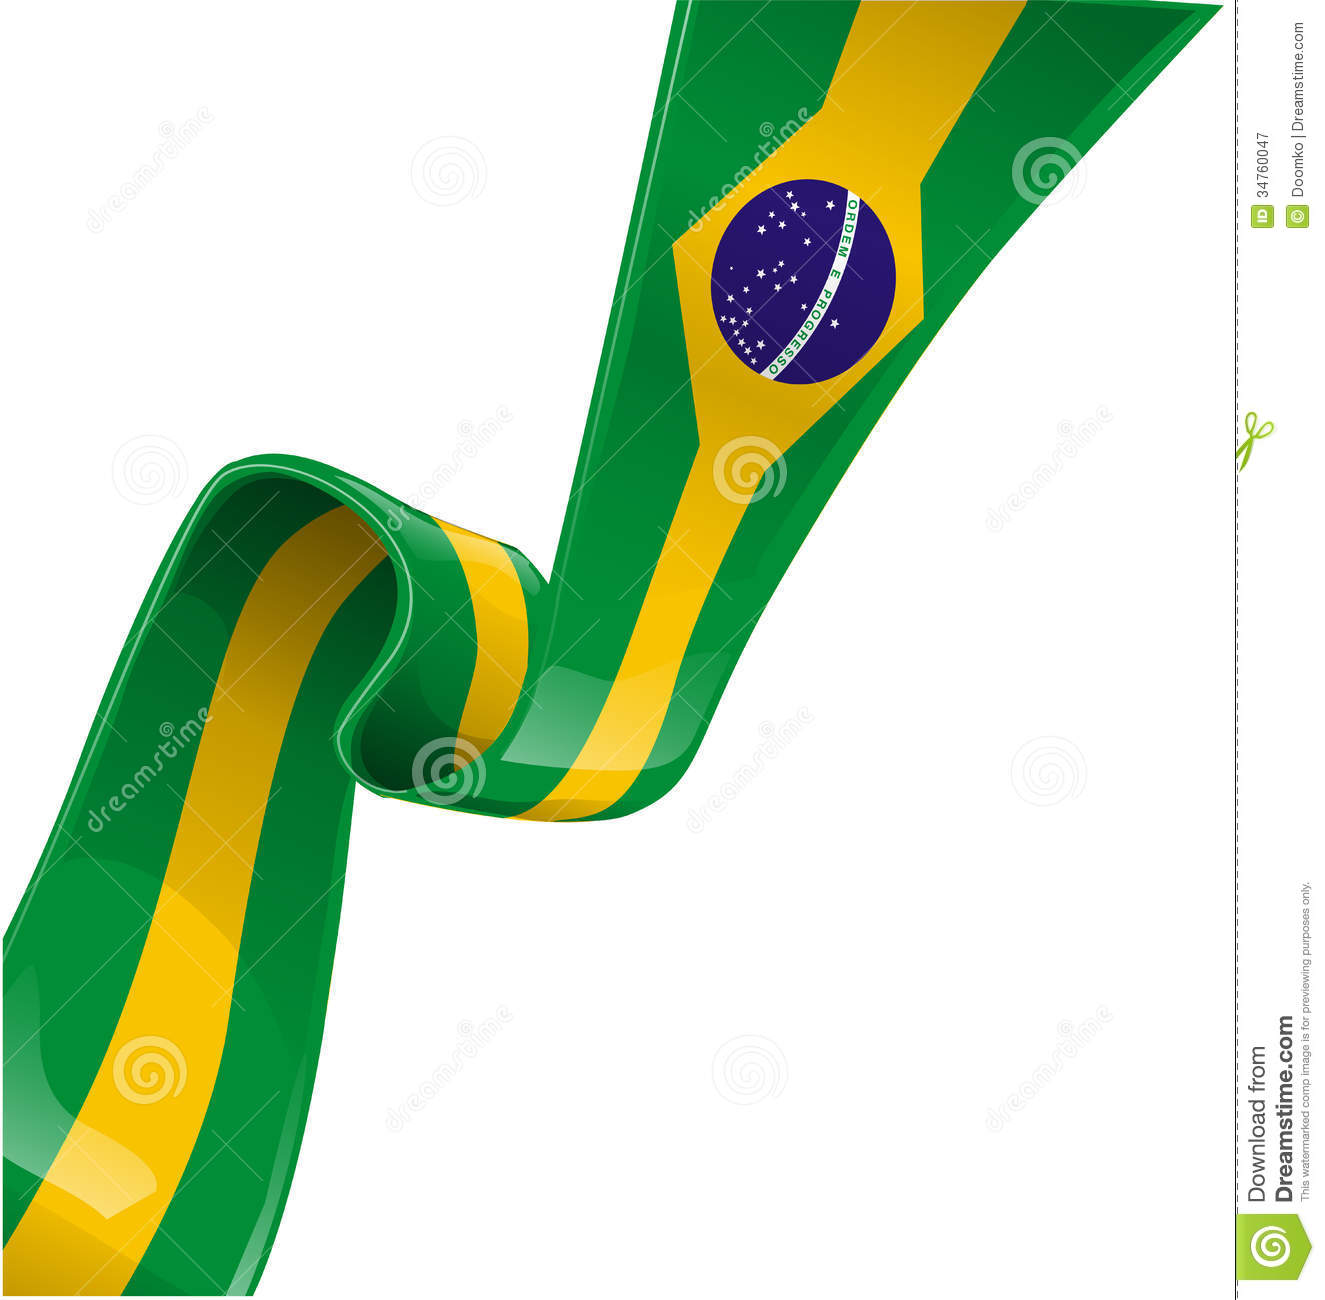 brazil ribbon flag royalty free stock photography image filmstrip clipart decorative border filmstrip clipart decorative border